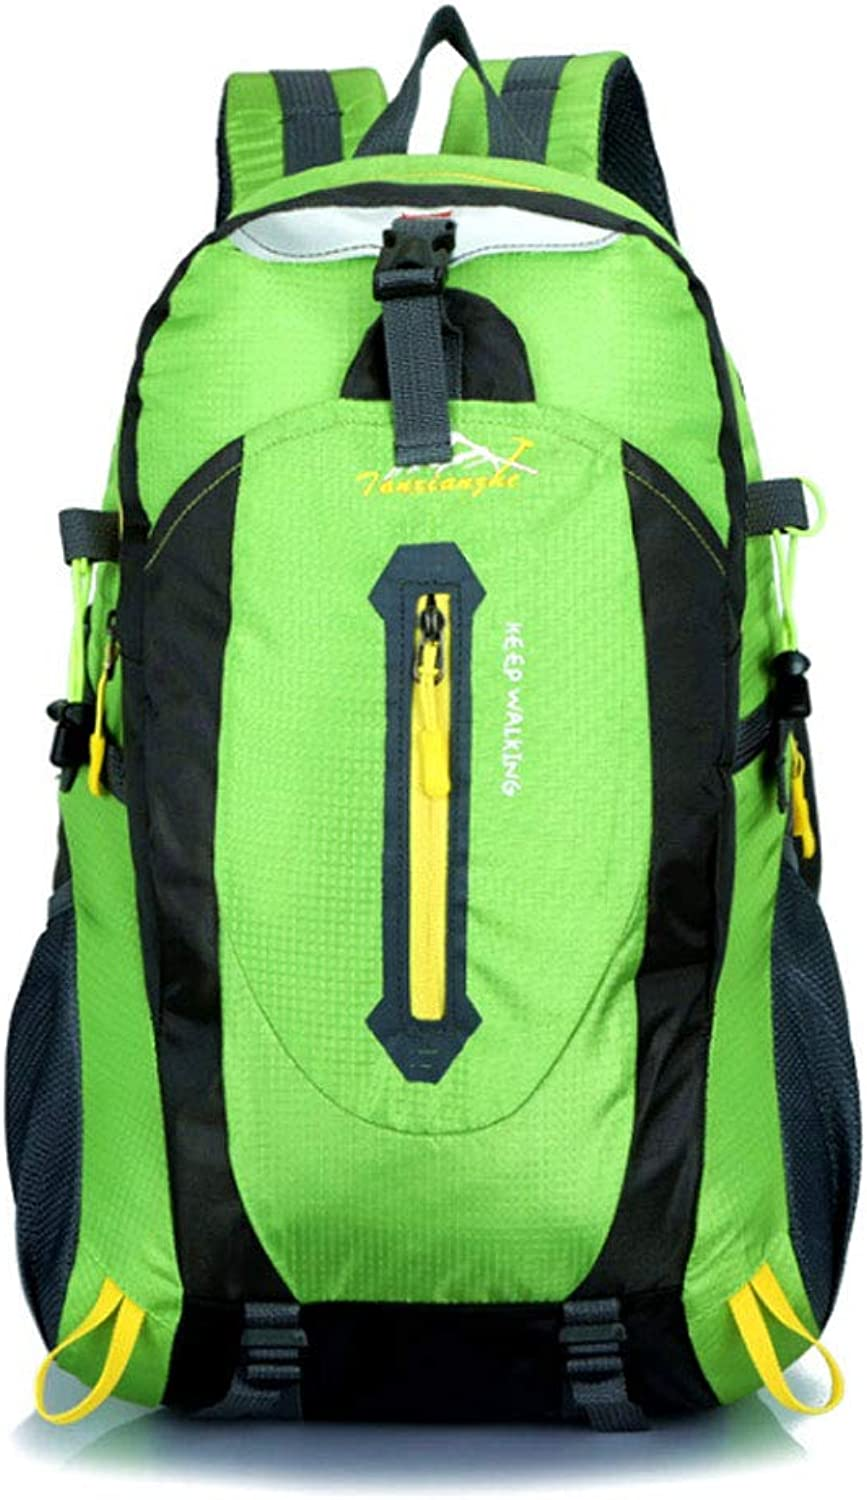 YangMi Backpack- Outdoor Mountaineering Bag Men and Women Shoulder Bag Waterproof Sports Bag 40L Leisure Travel Hiking Backpack (color   Green, Size   31x51x19cm)